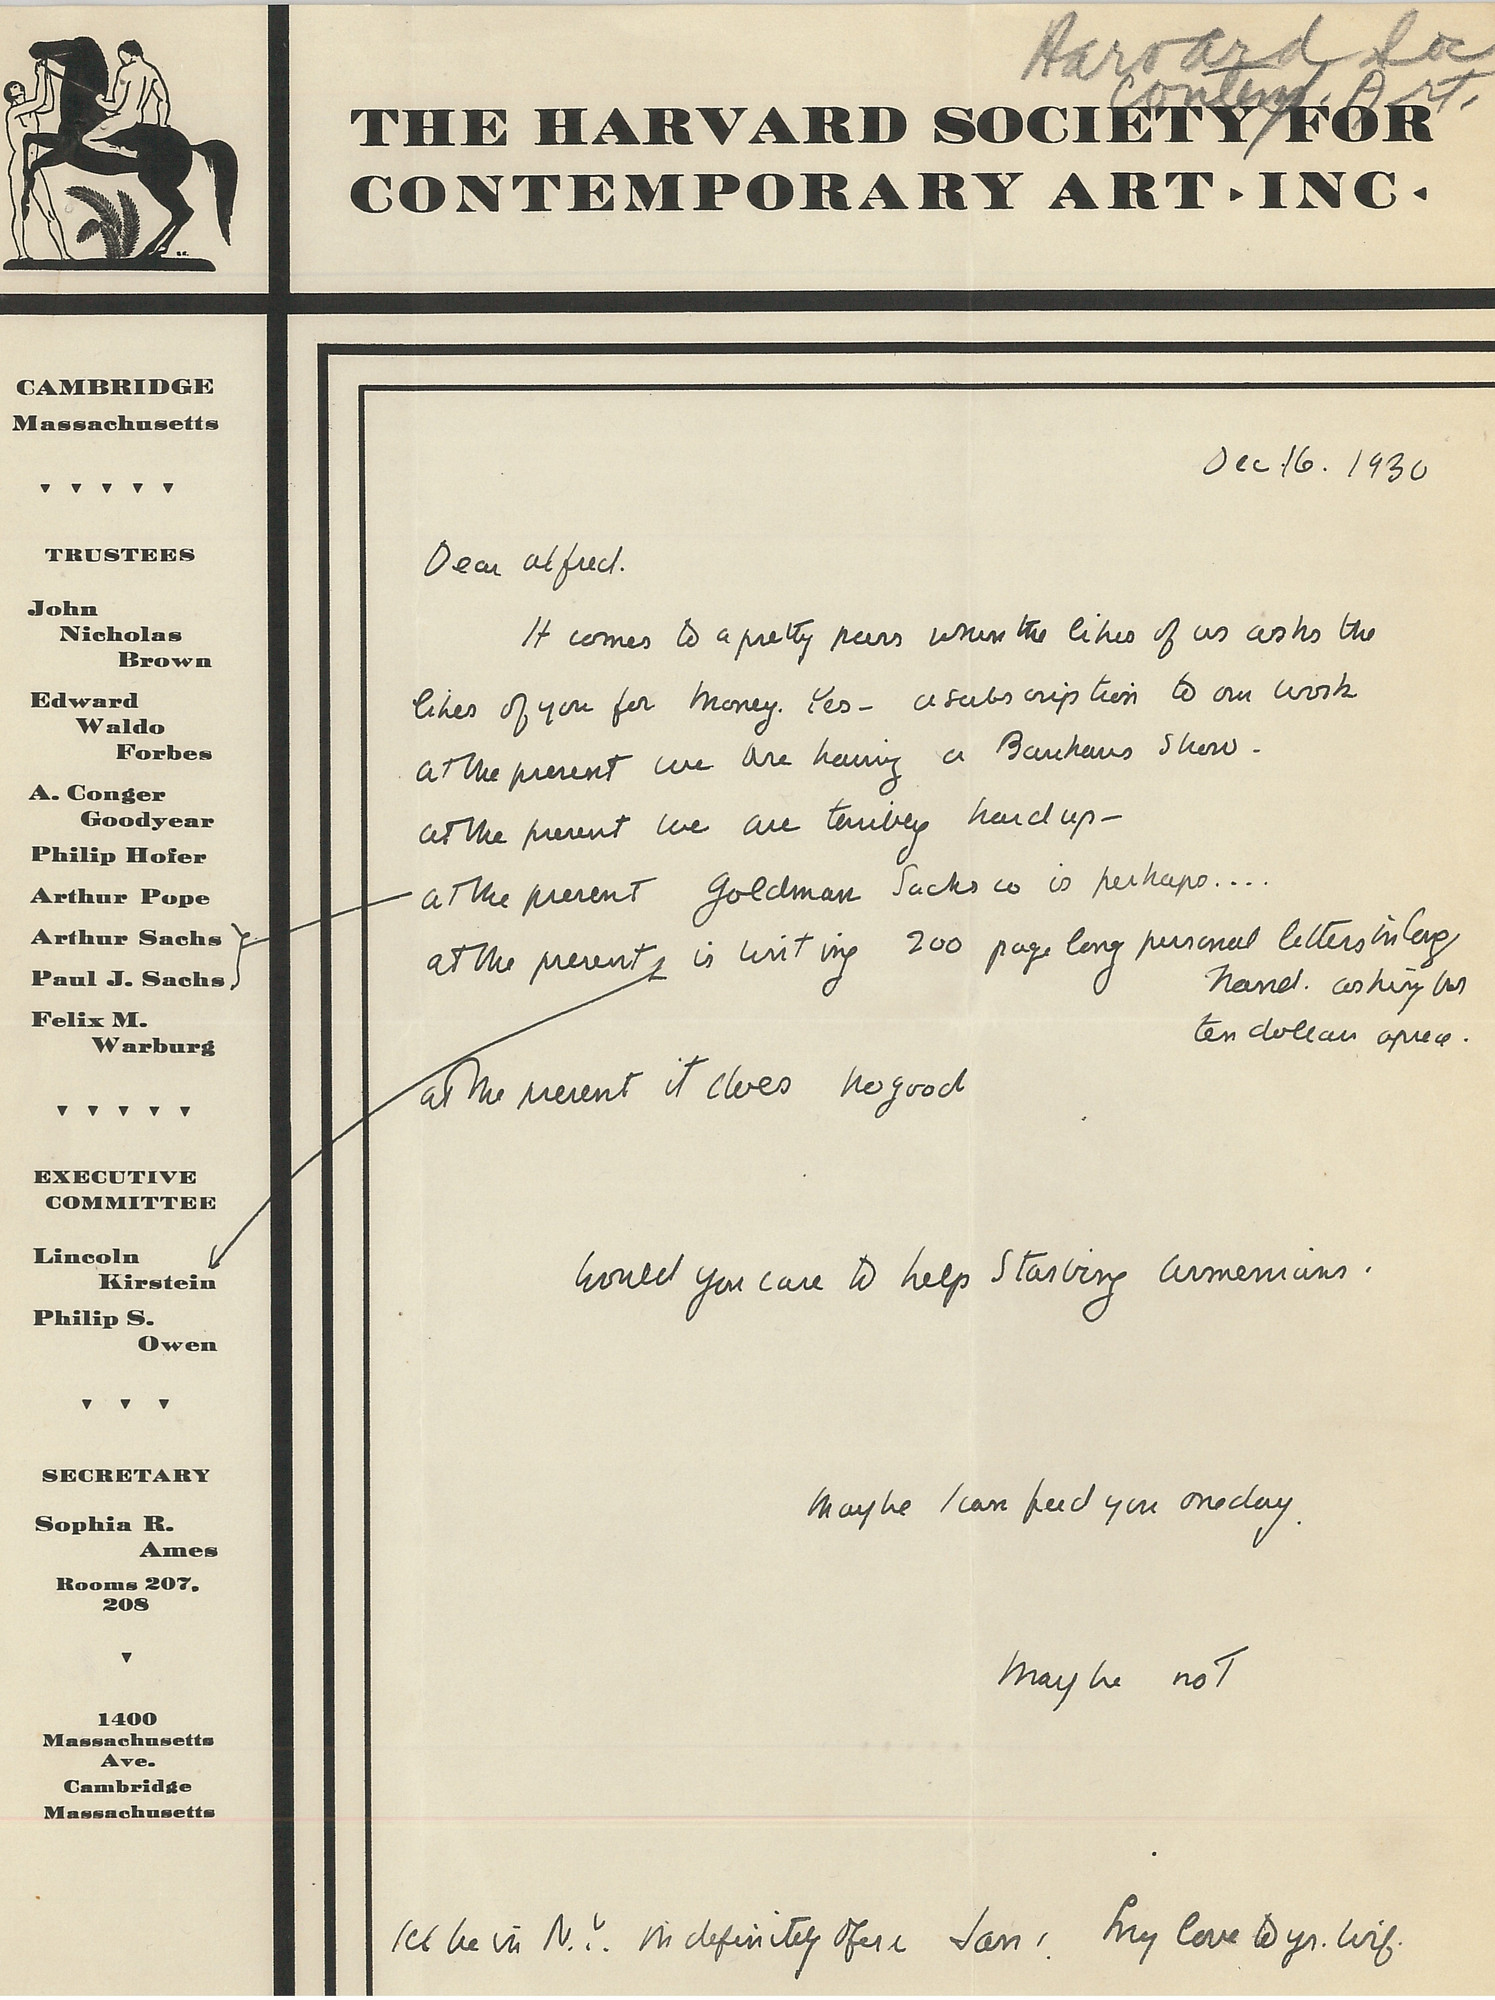 Letter from Lincoln Kirstein to Alfred H. Barr Jr. requesting funding for The Harvard Society for Contemporary Art, Inc., December 16, 1930. Alfred H. Barr Jr. Papers, I.A.3. The Museum of Modern Art Archives, New York